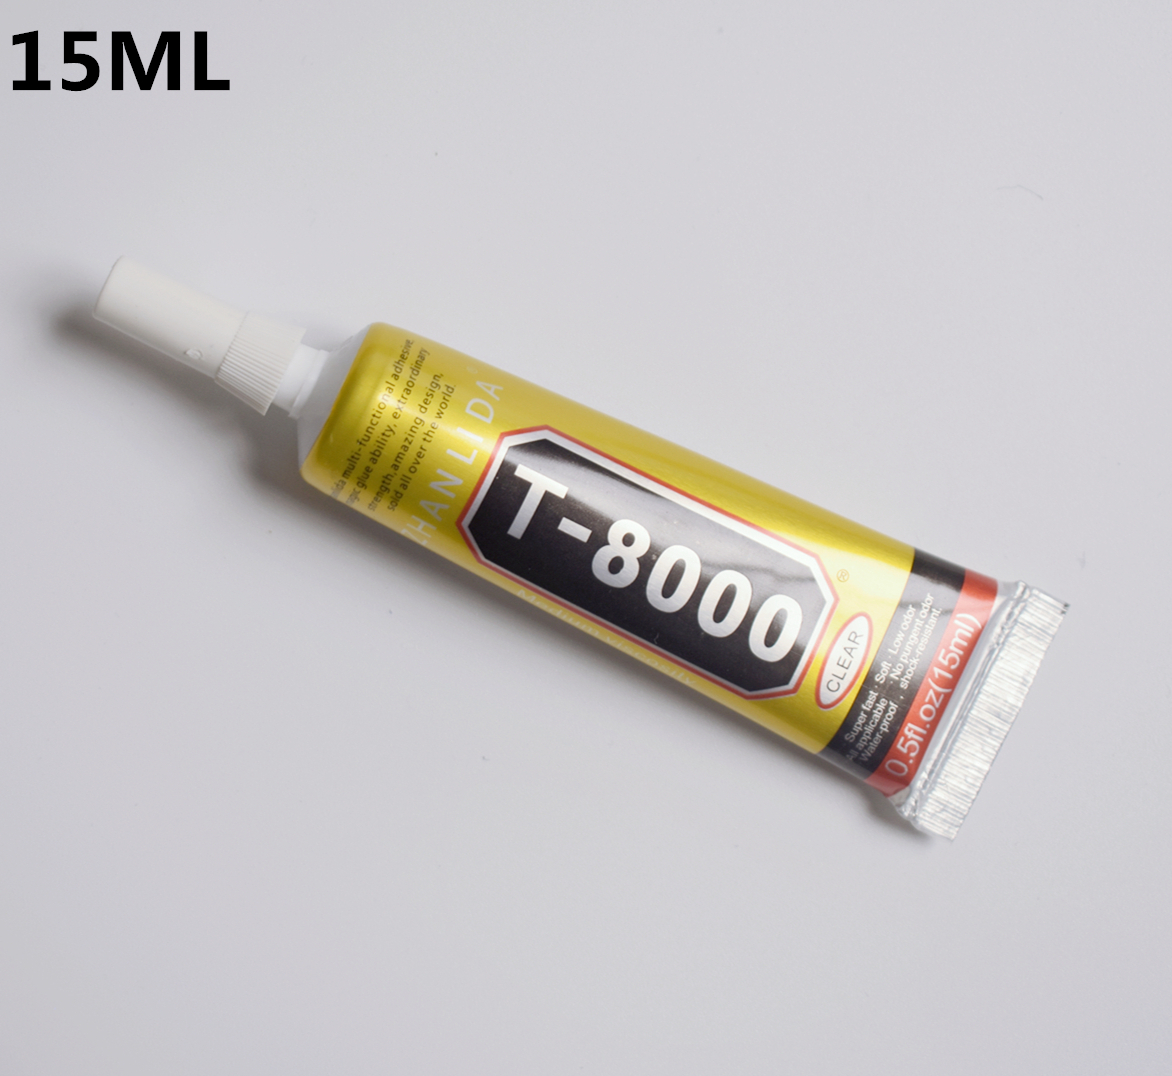 1 Pc 15ml T-8000 Glue T8000 Multi Purpose Glue Adhesive Epoxy Resin Repair Cell Phone LCD Touch Screen Super DIY Glue T 8000